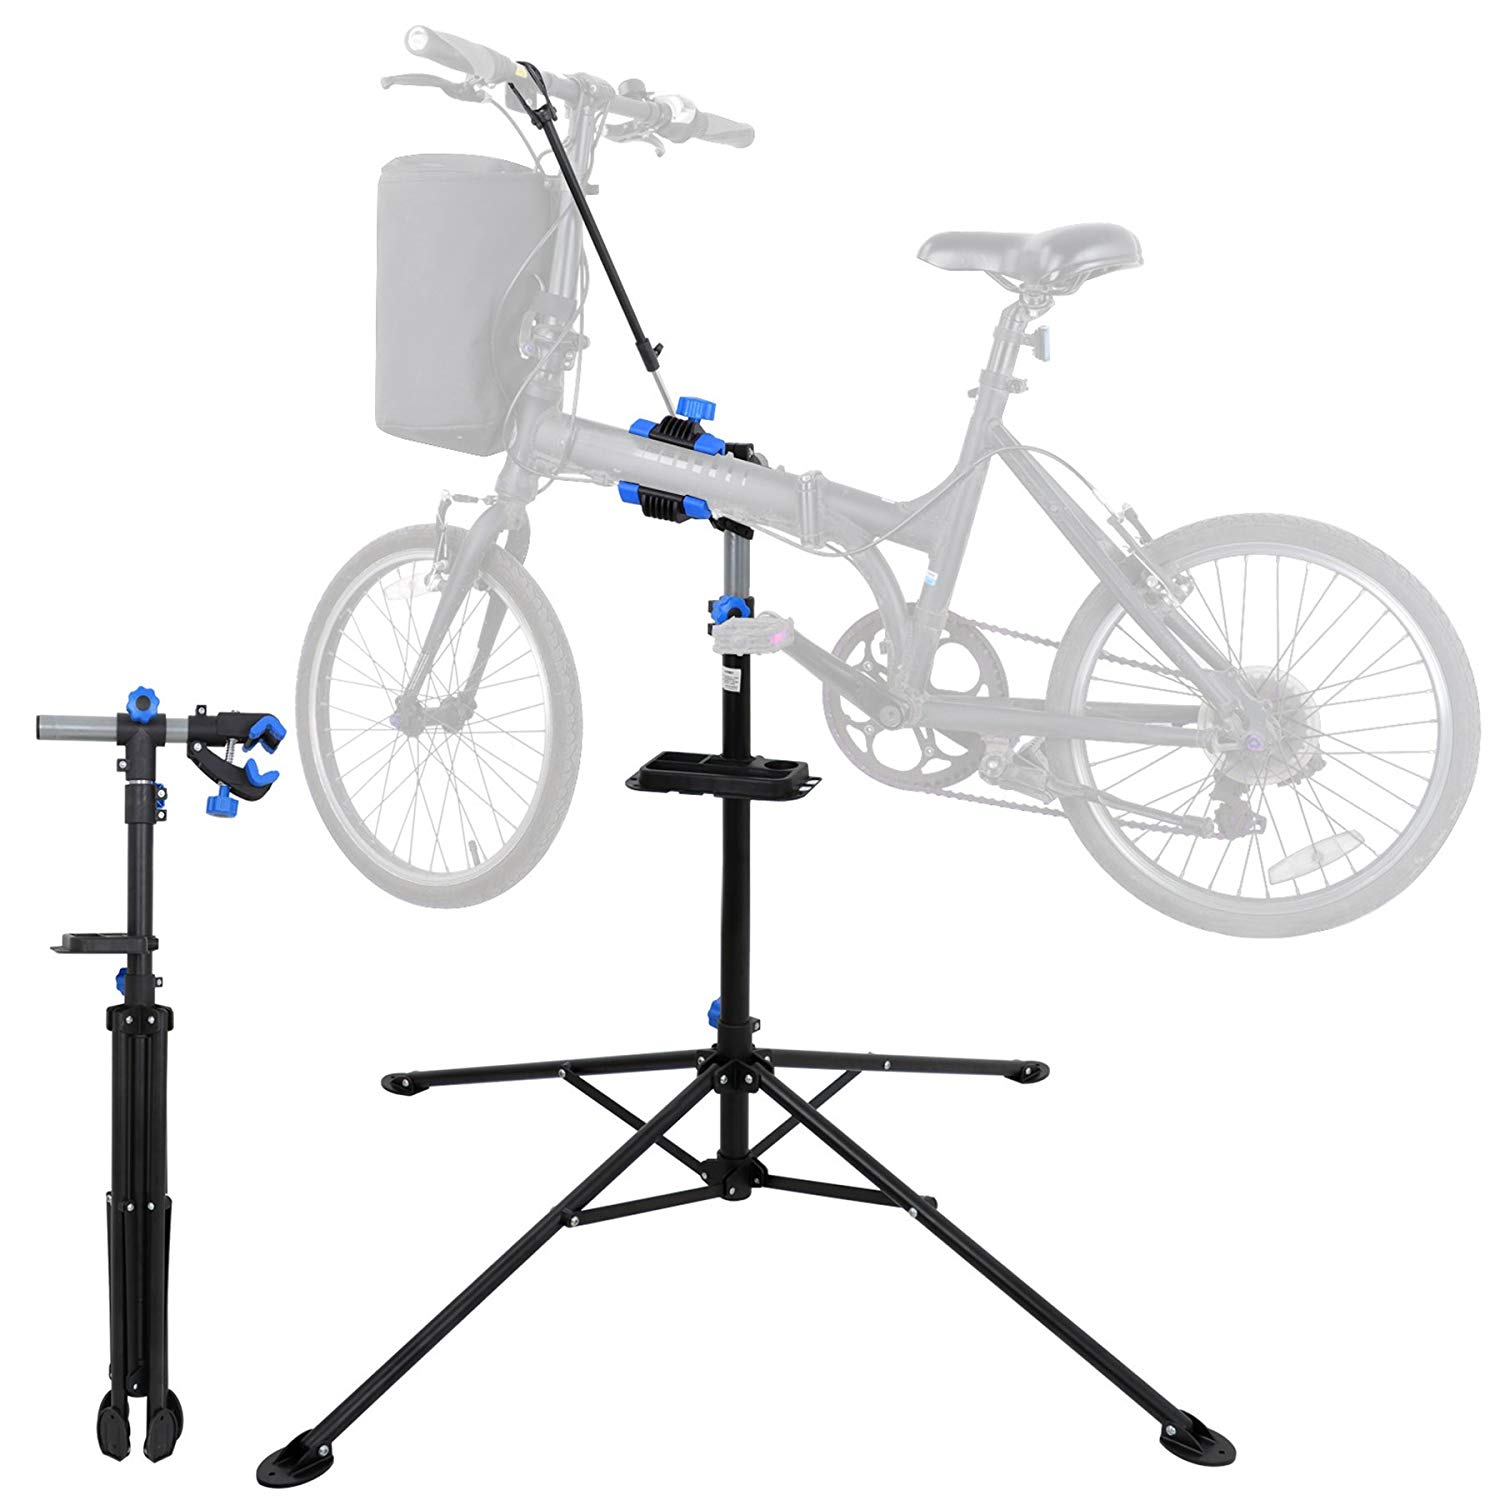 F2C Portable Adjustable Bike Repair Stand